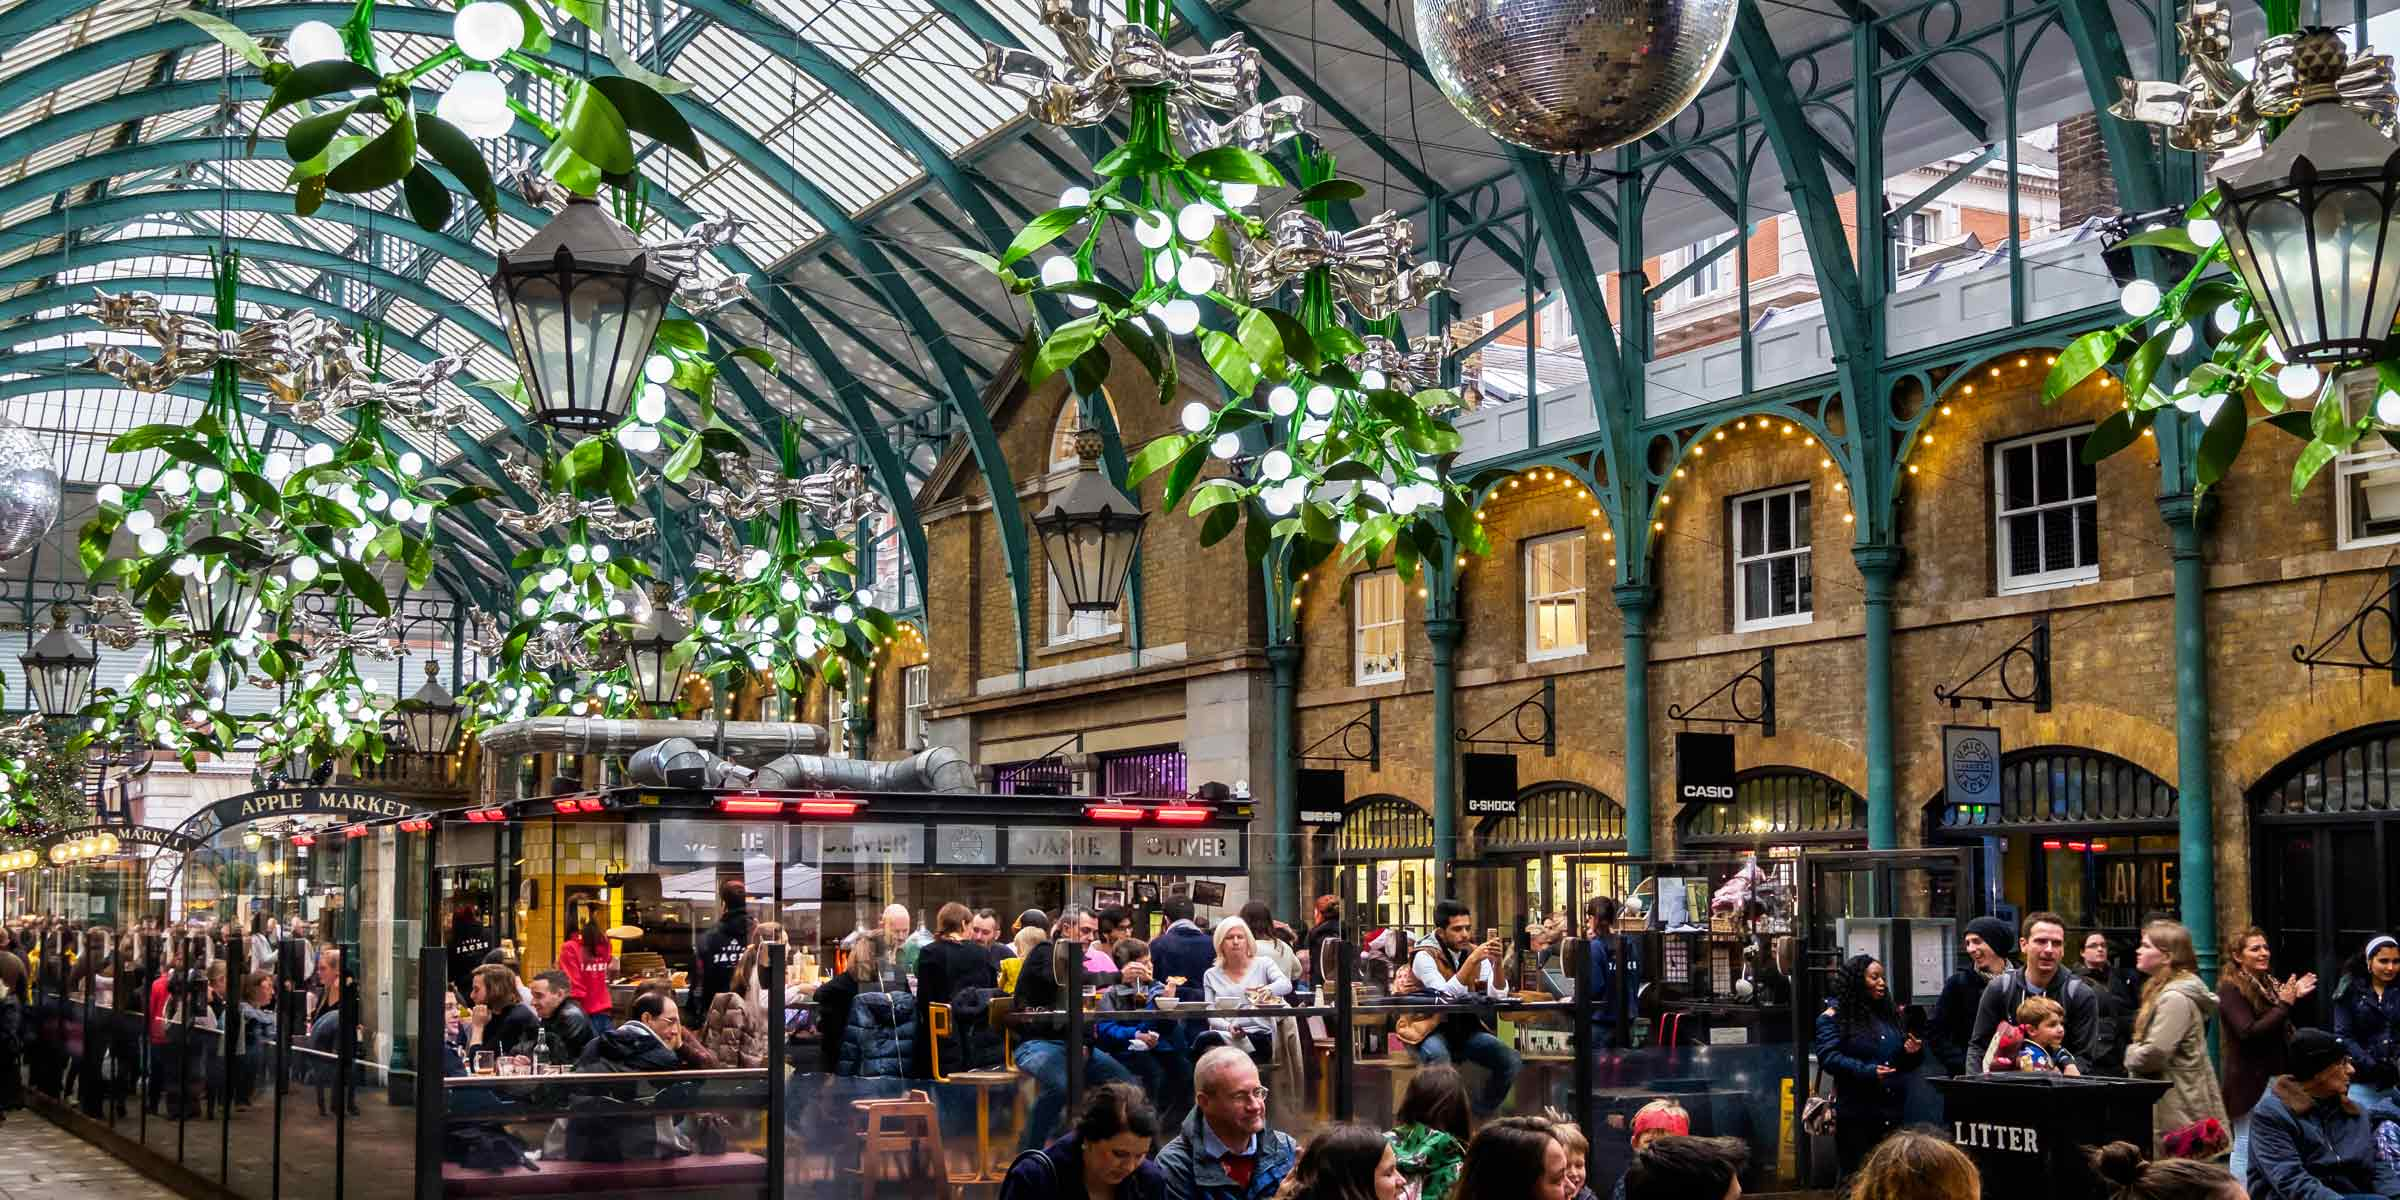 Commercial Property in Covent Garden